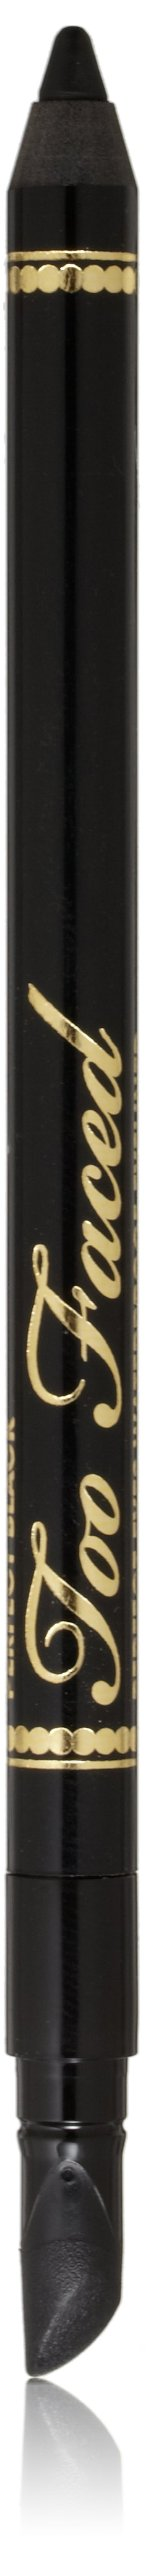 Too Faced Perfect Eyes Waterproof Eyeliner, Perfect Black, 0.04 Ounce